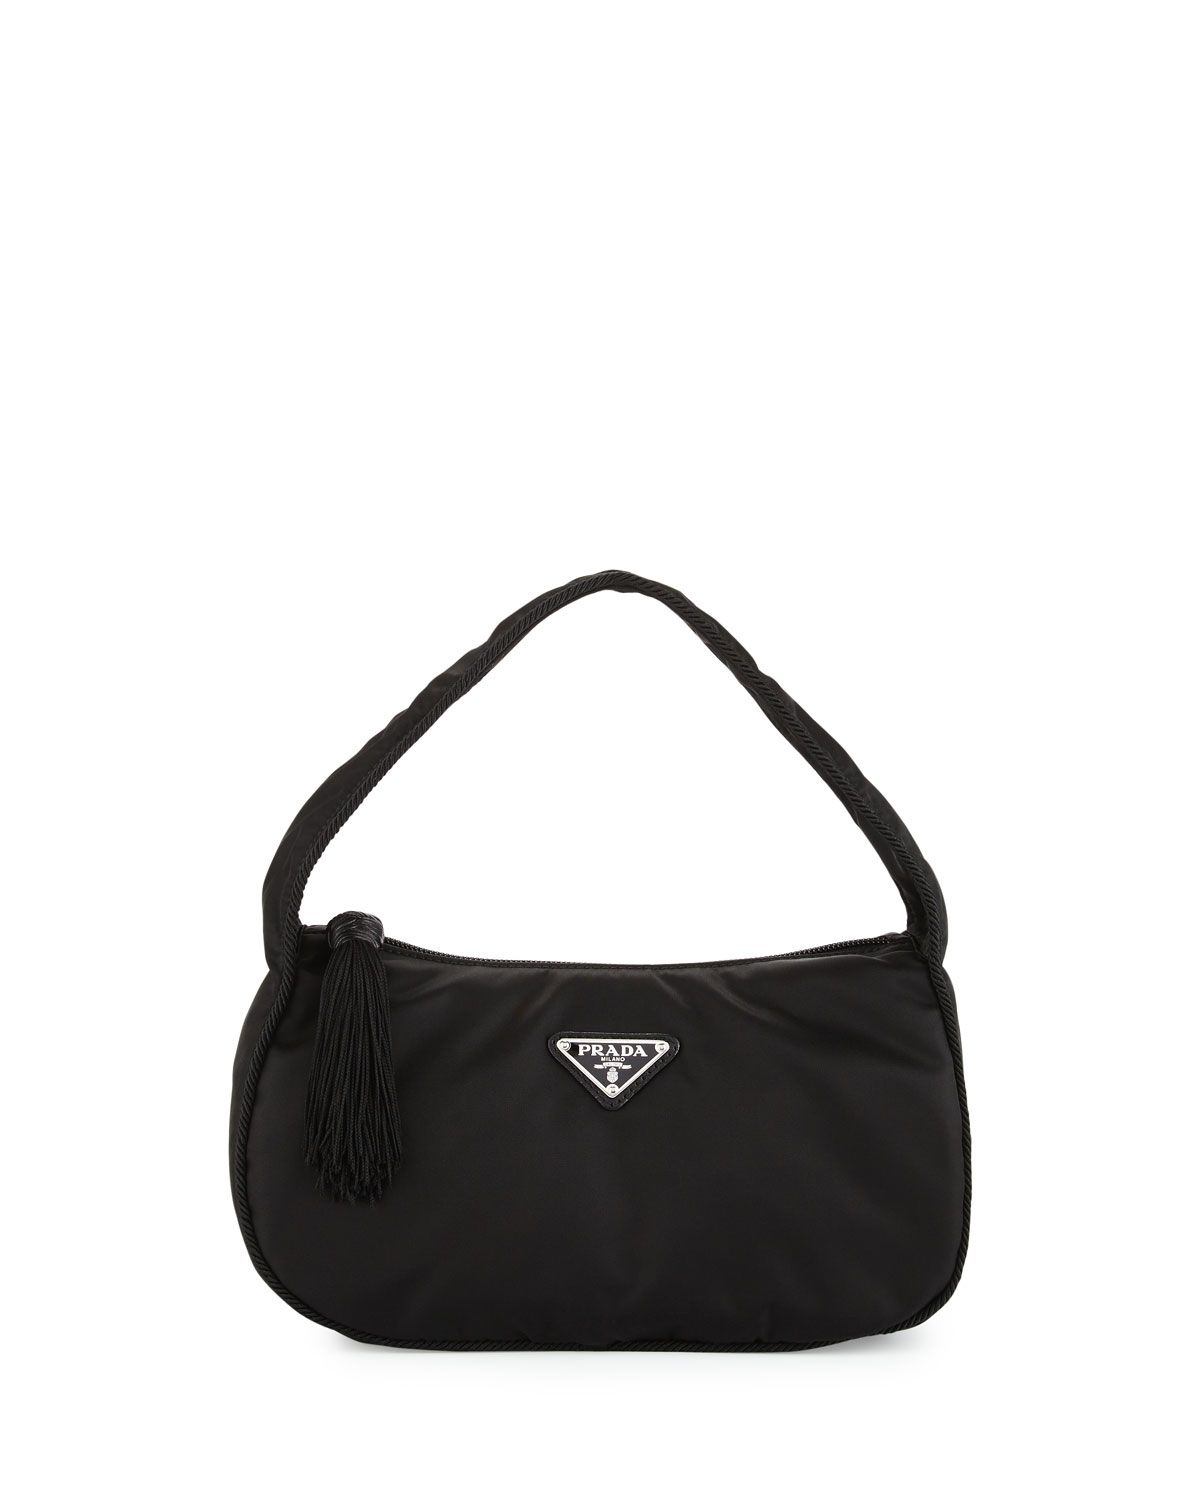 5e1858b713f0d1 Nylon Small Zip-Top Hobo Bag Black (Nero) in 2019 | *Neiman Marcus ...